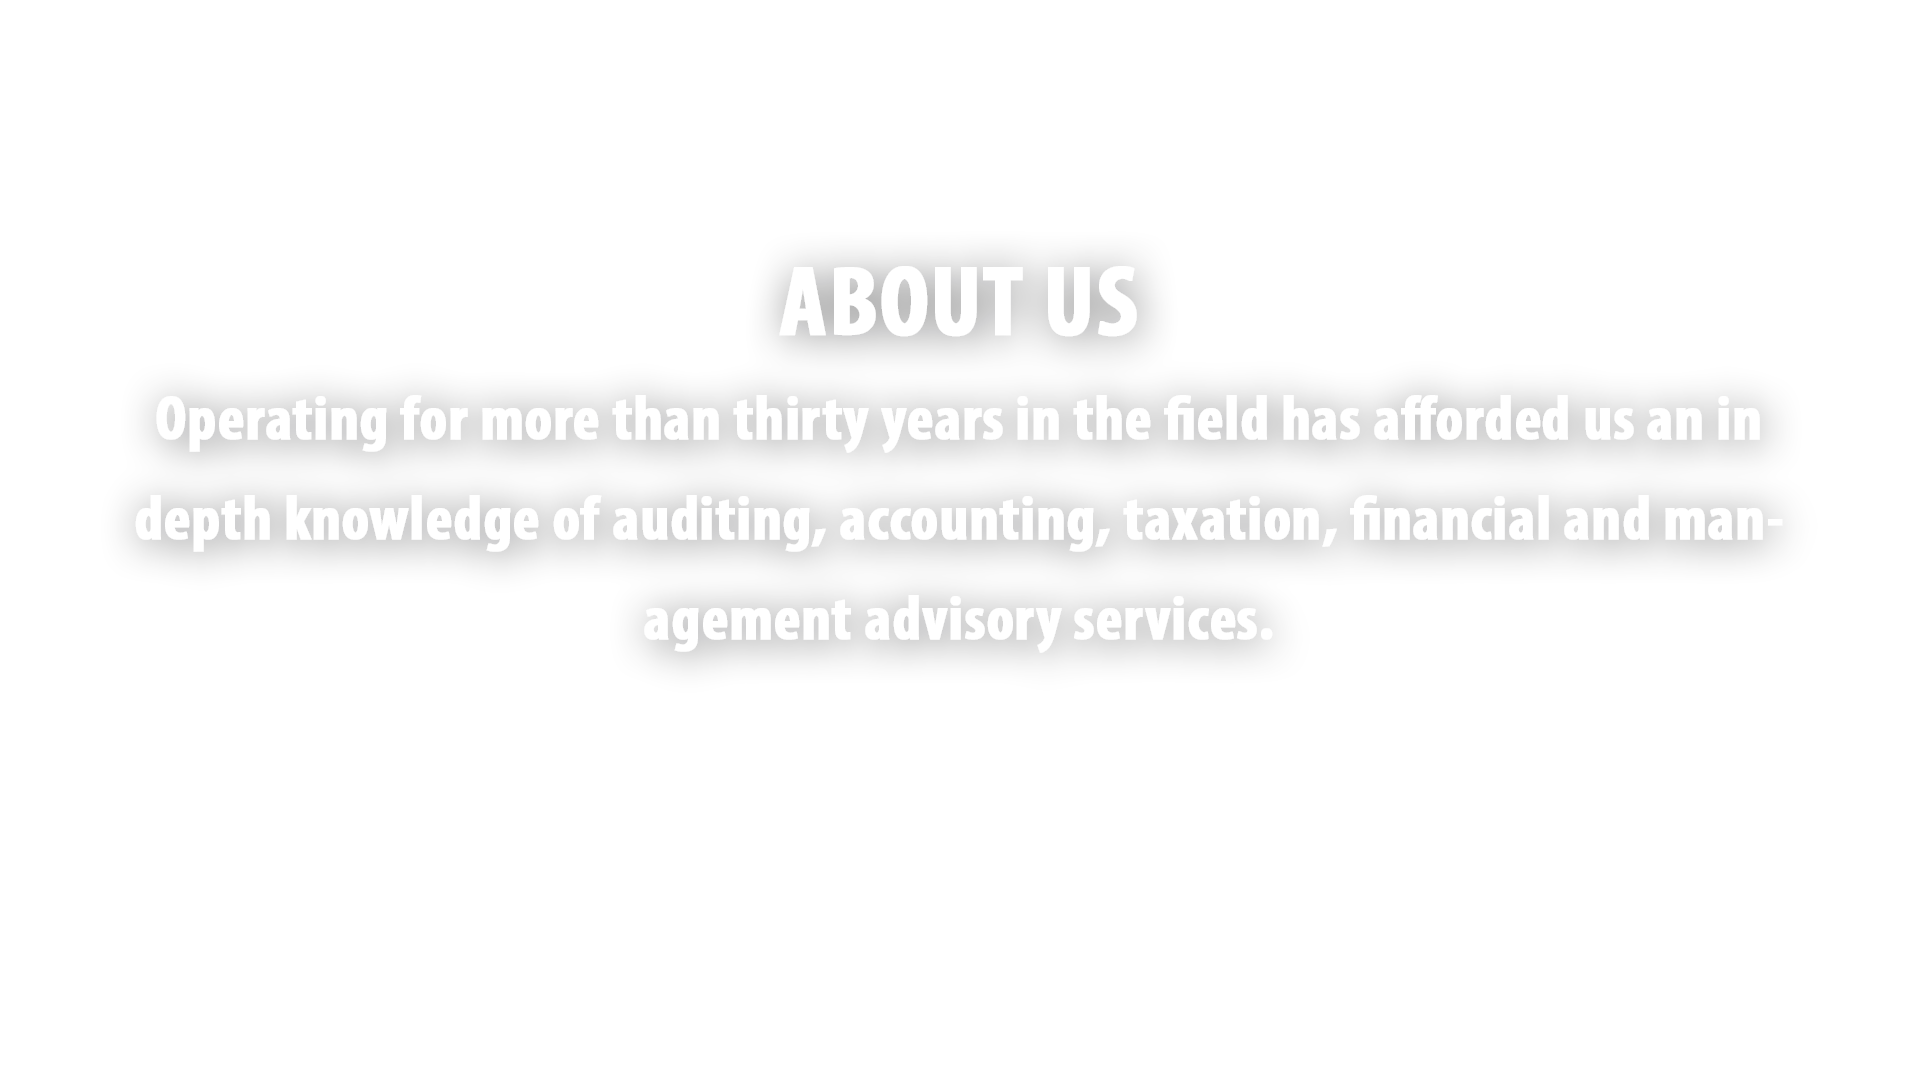 Operating for more than thirty years in the field has afforded us an in depth knowledge of auditing, accounting, taxation, financial and management advisory services.